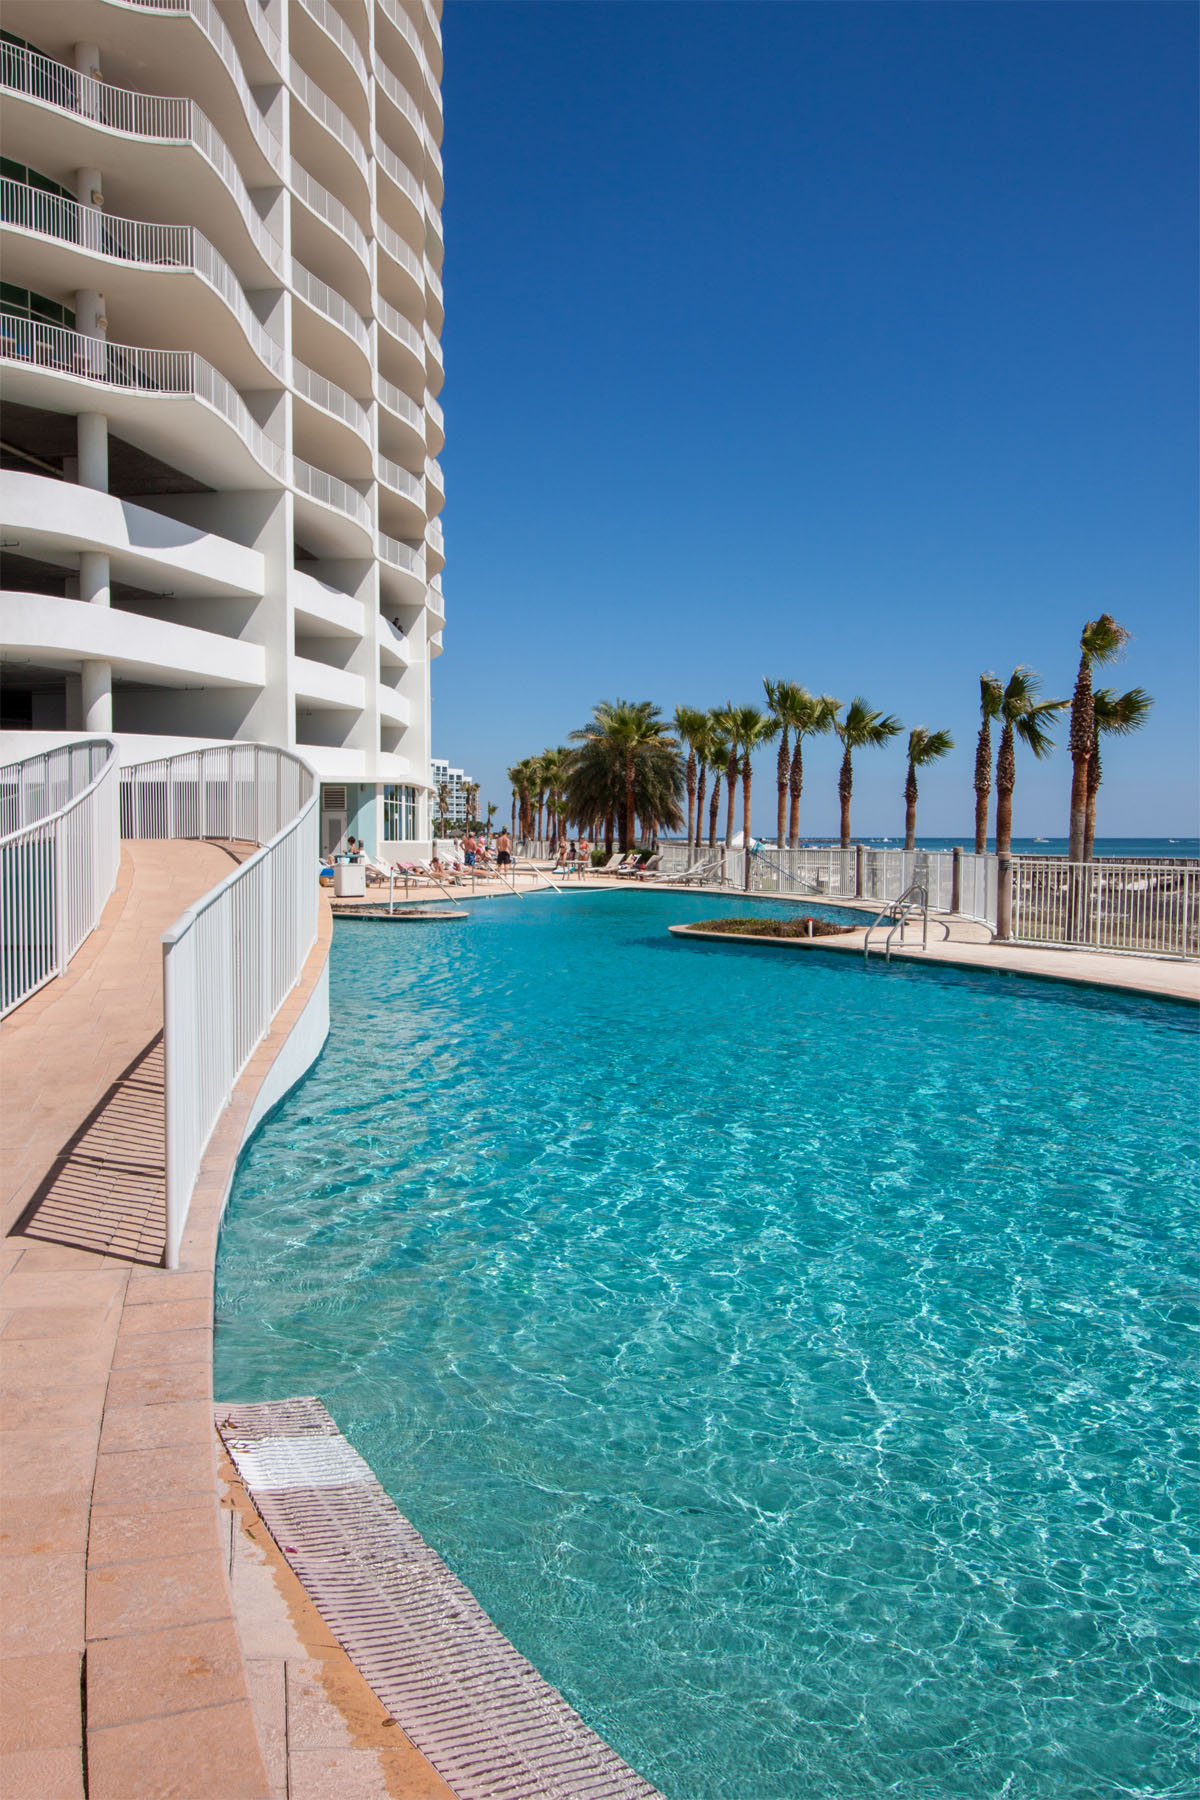 Turquoise Place Pool Walk Way